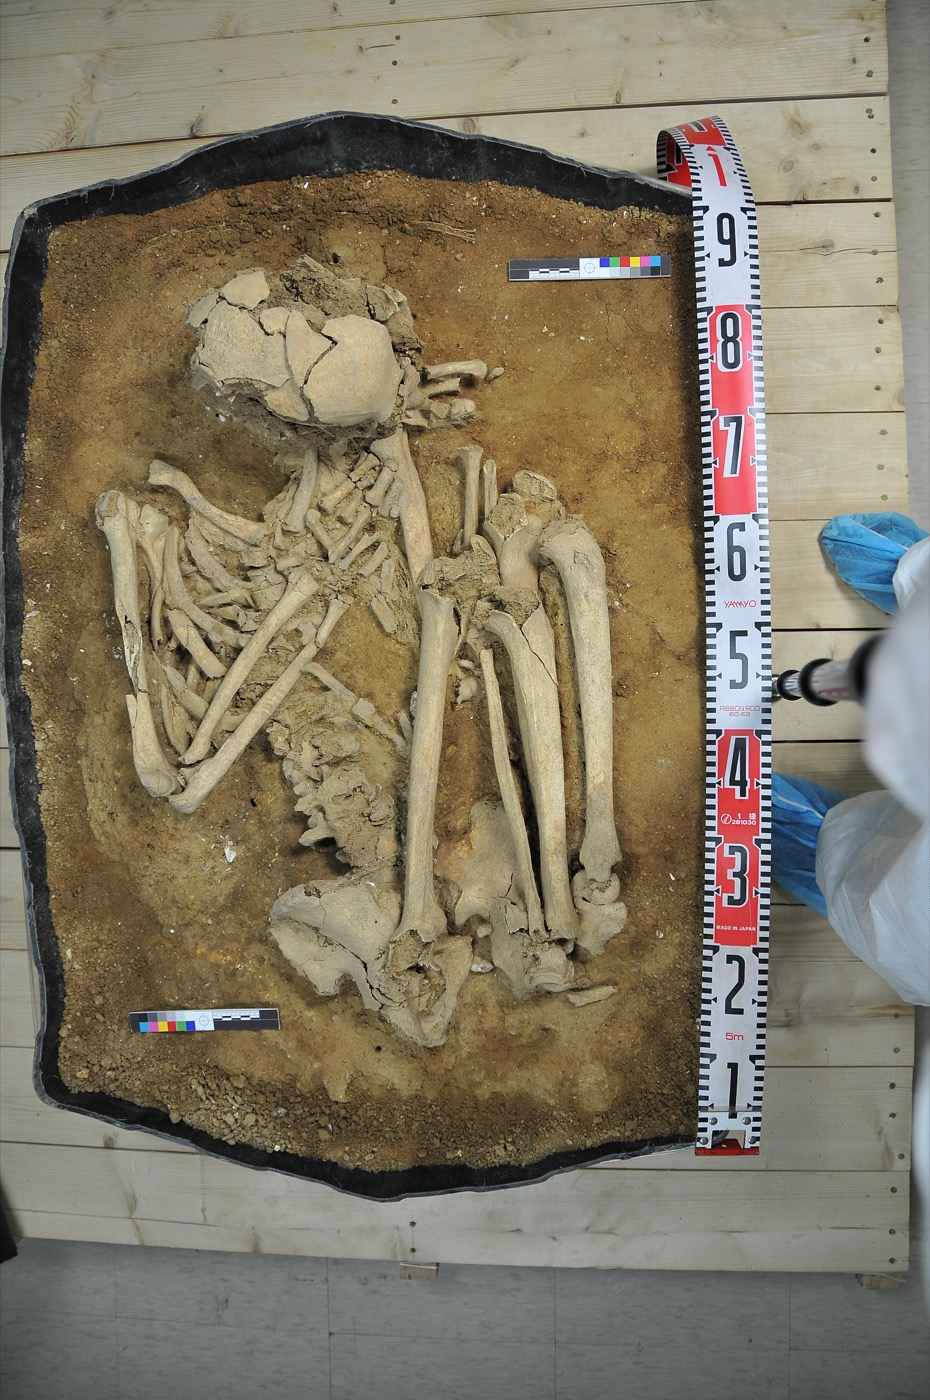 a skeleton curled up in a burial plot with measurement tape beside it